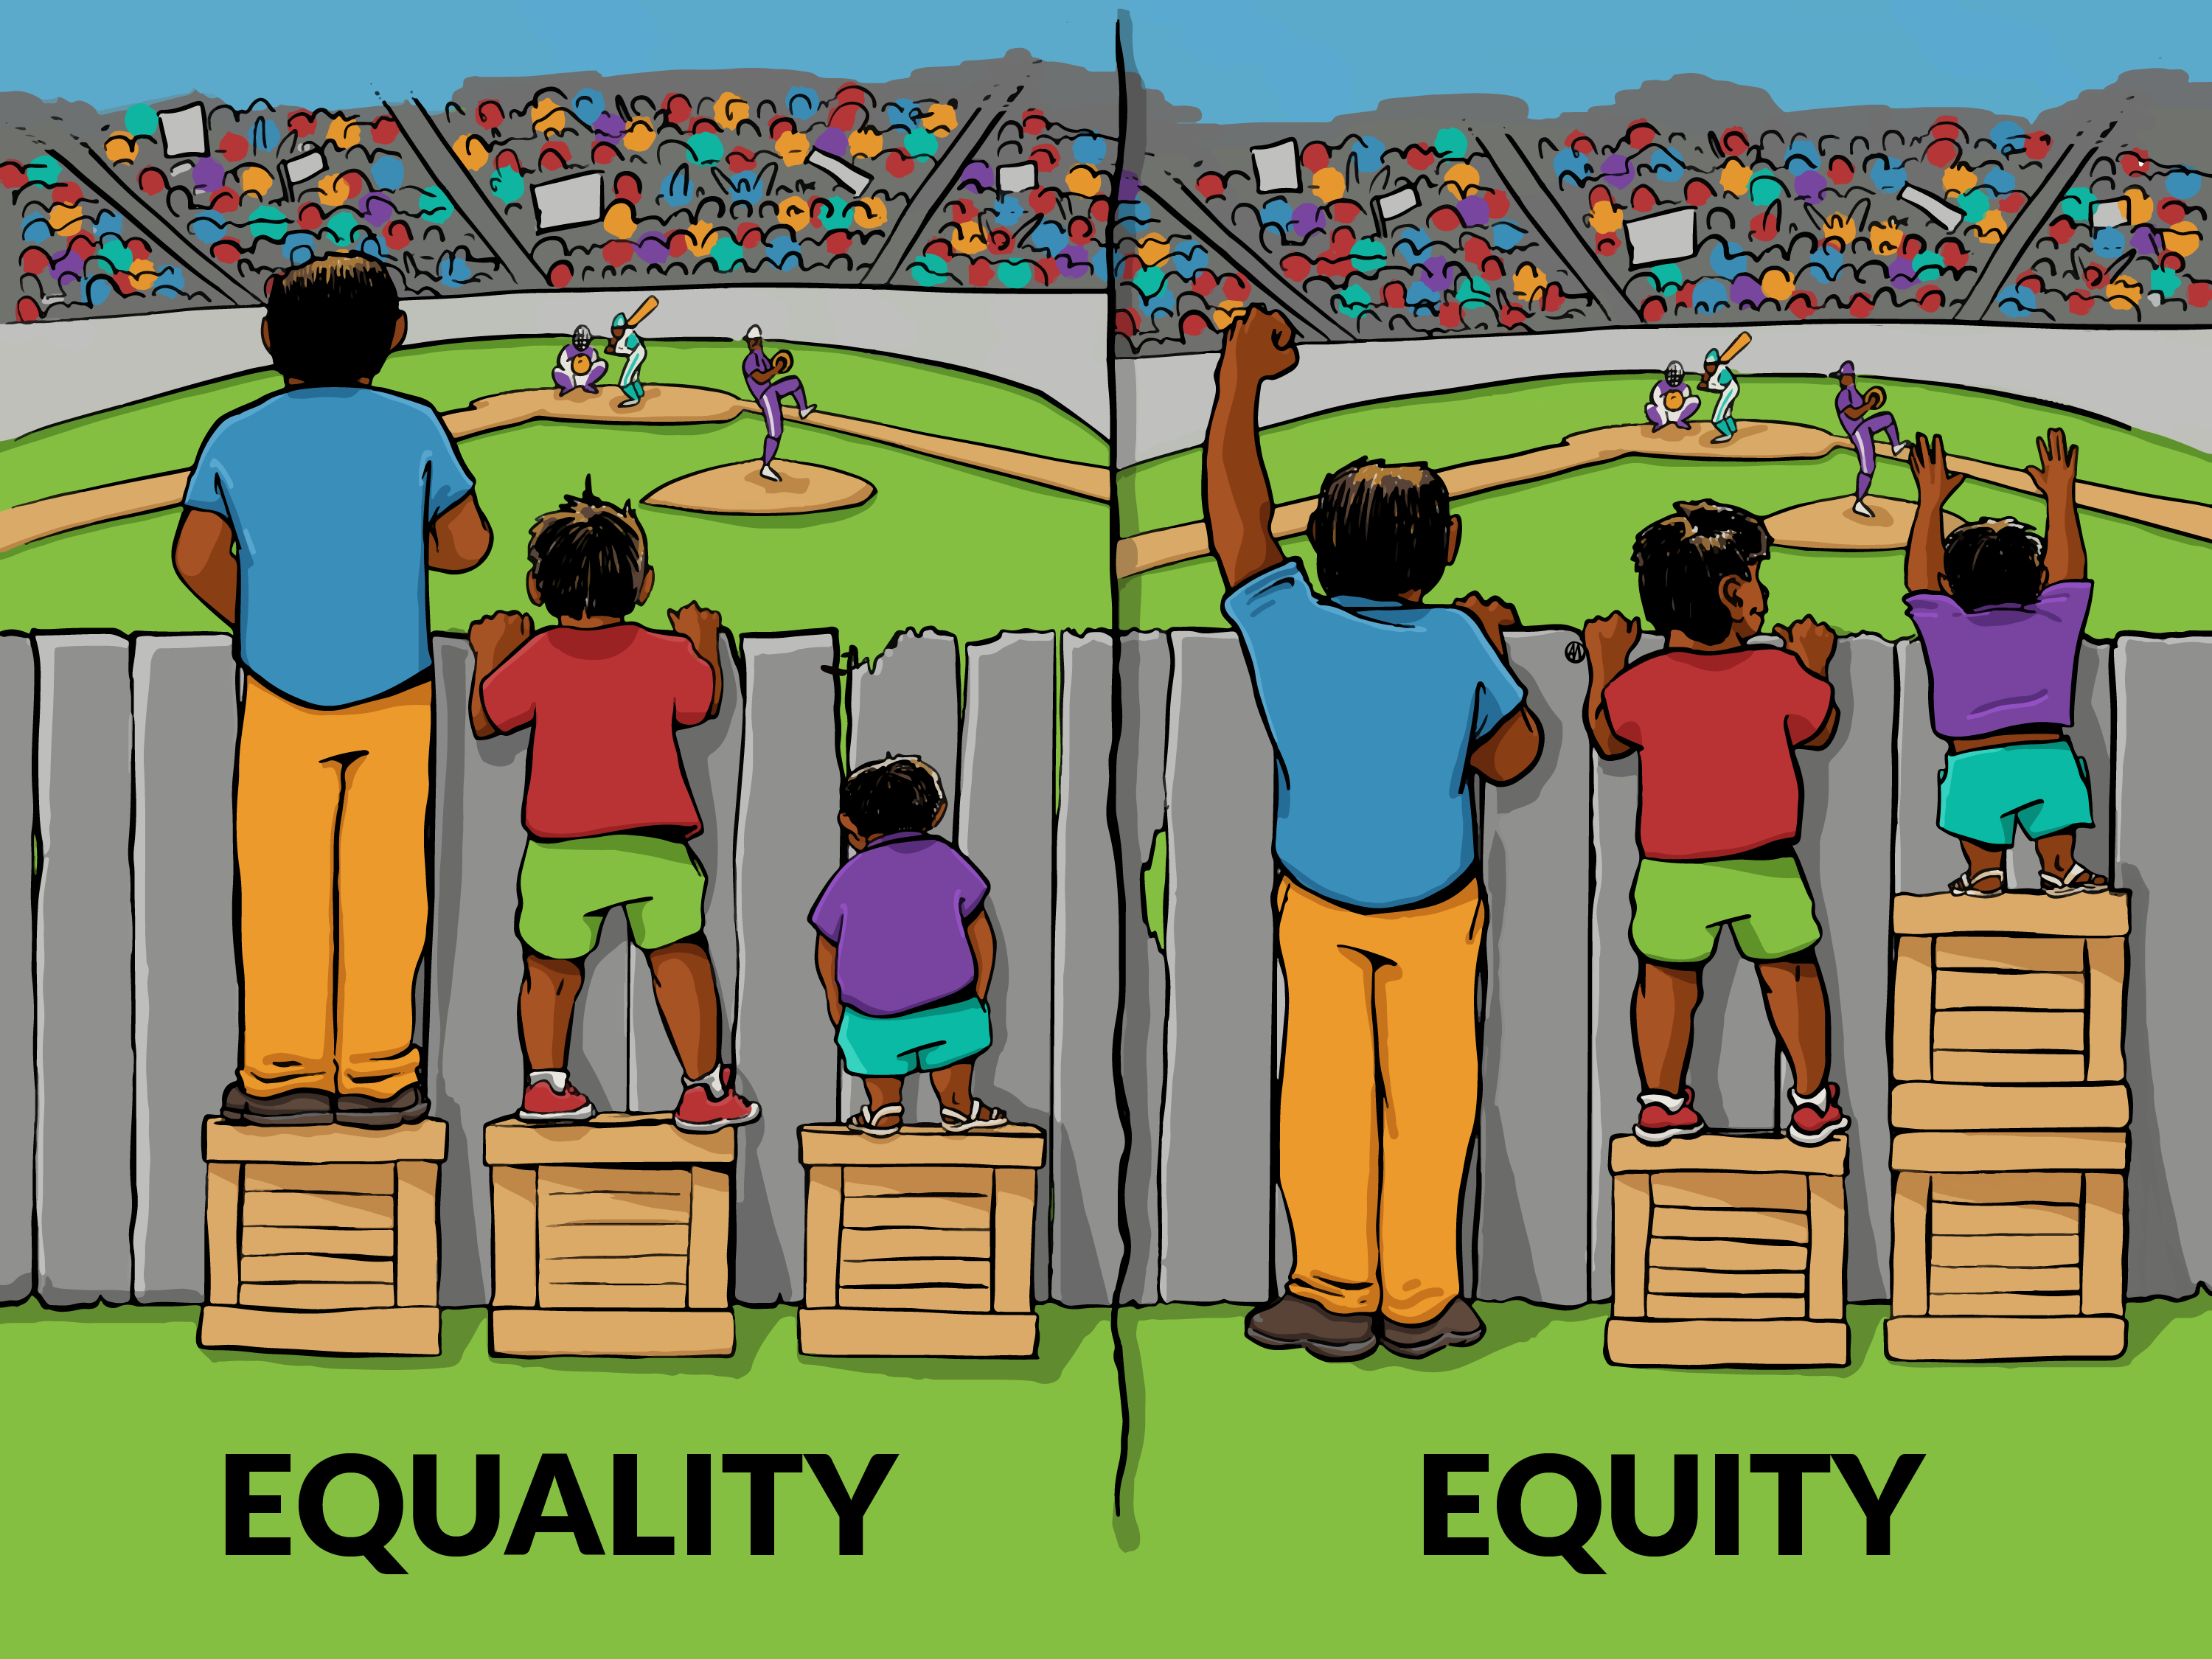 equalityequity.png